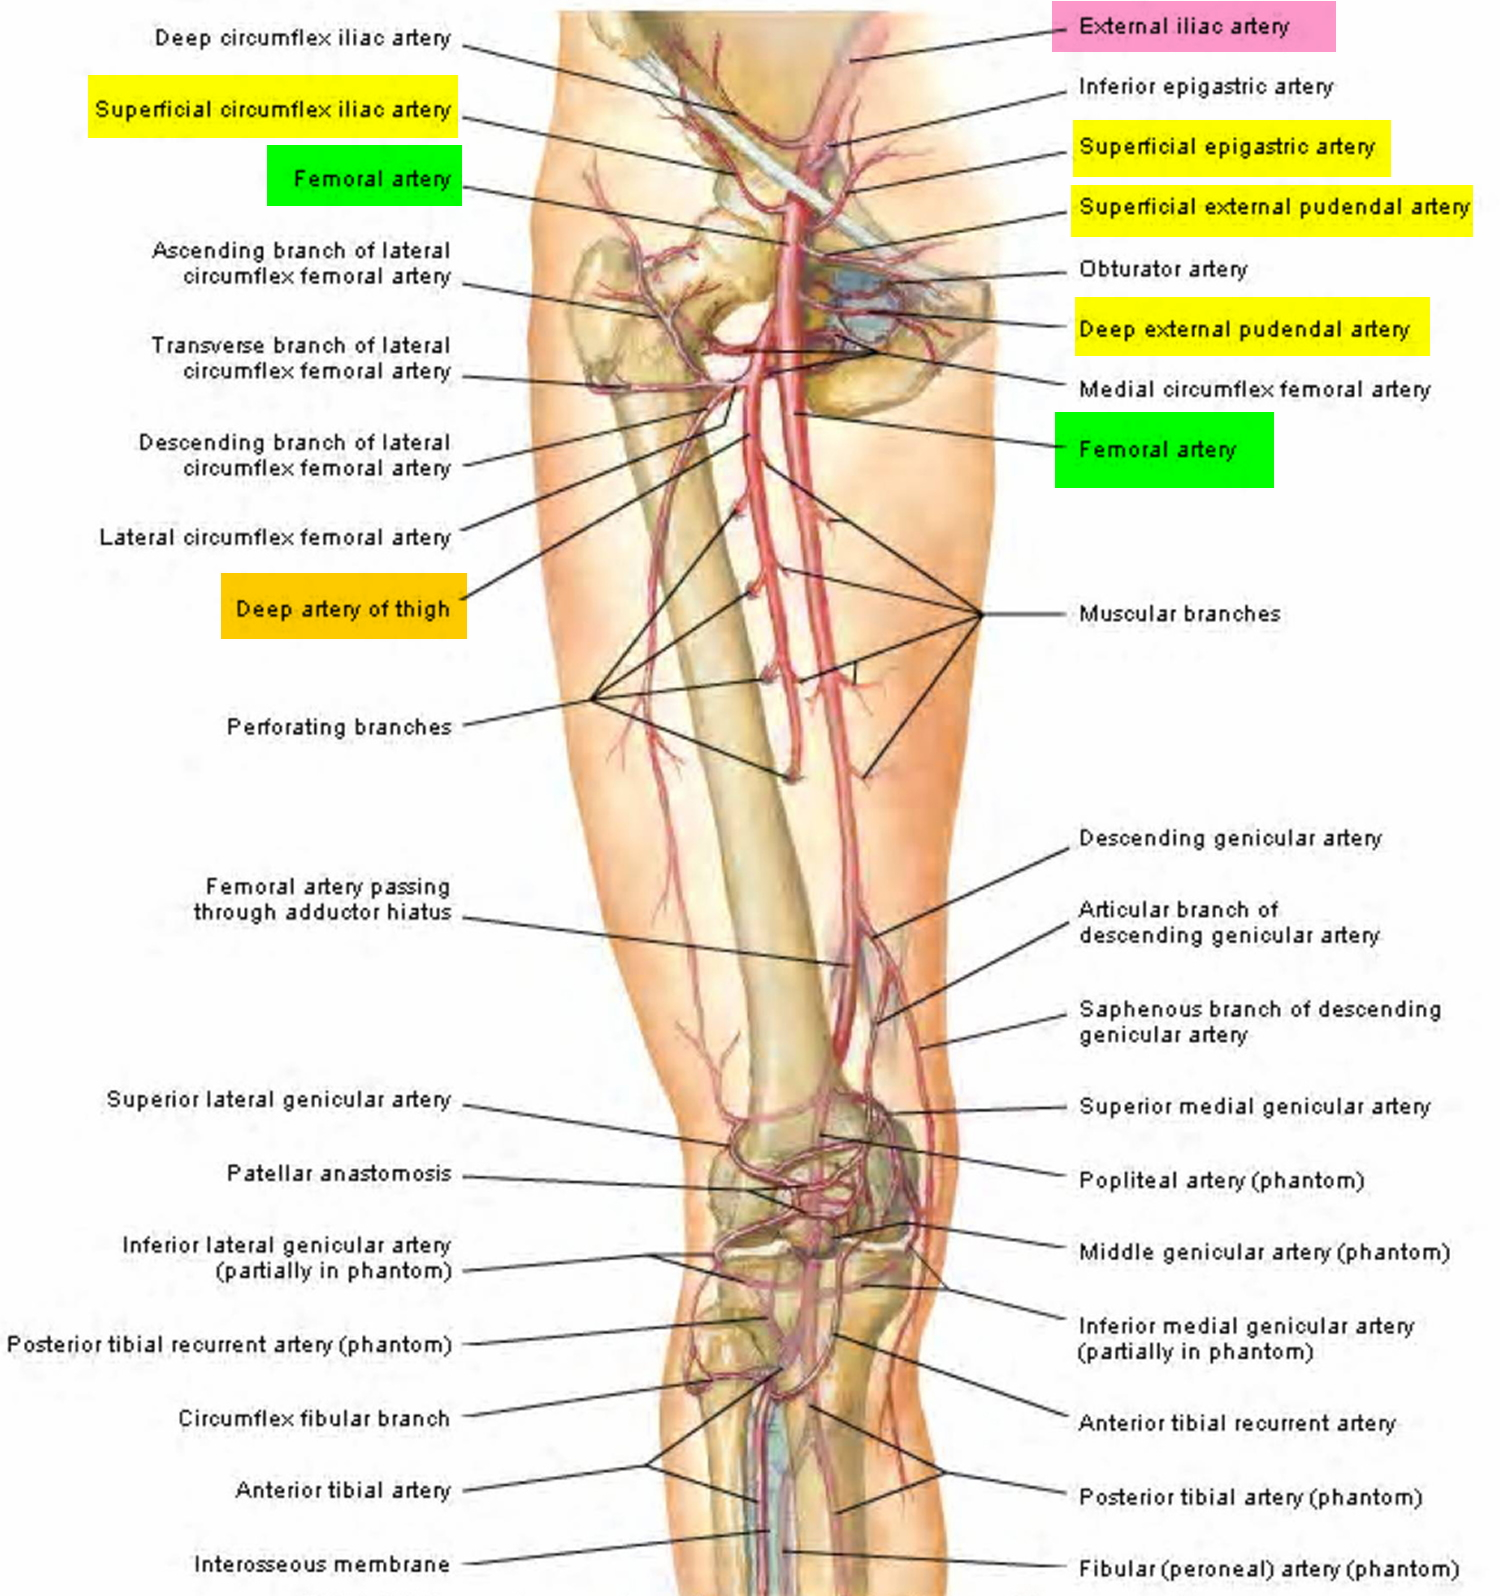 Femoral Artery - Common, Superficial, Deep - Location & Function